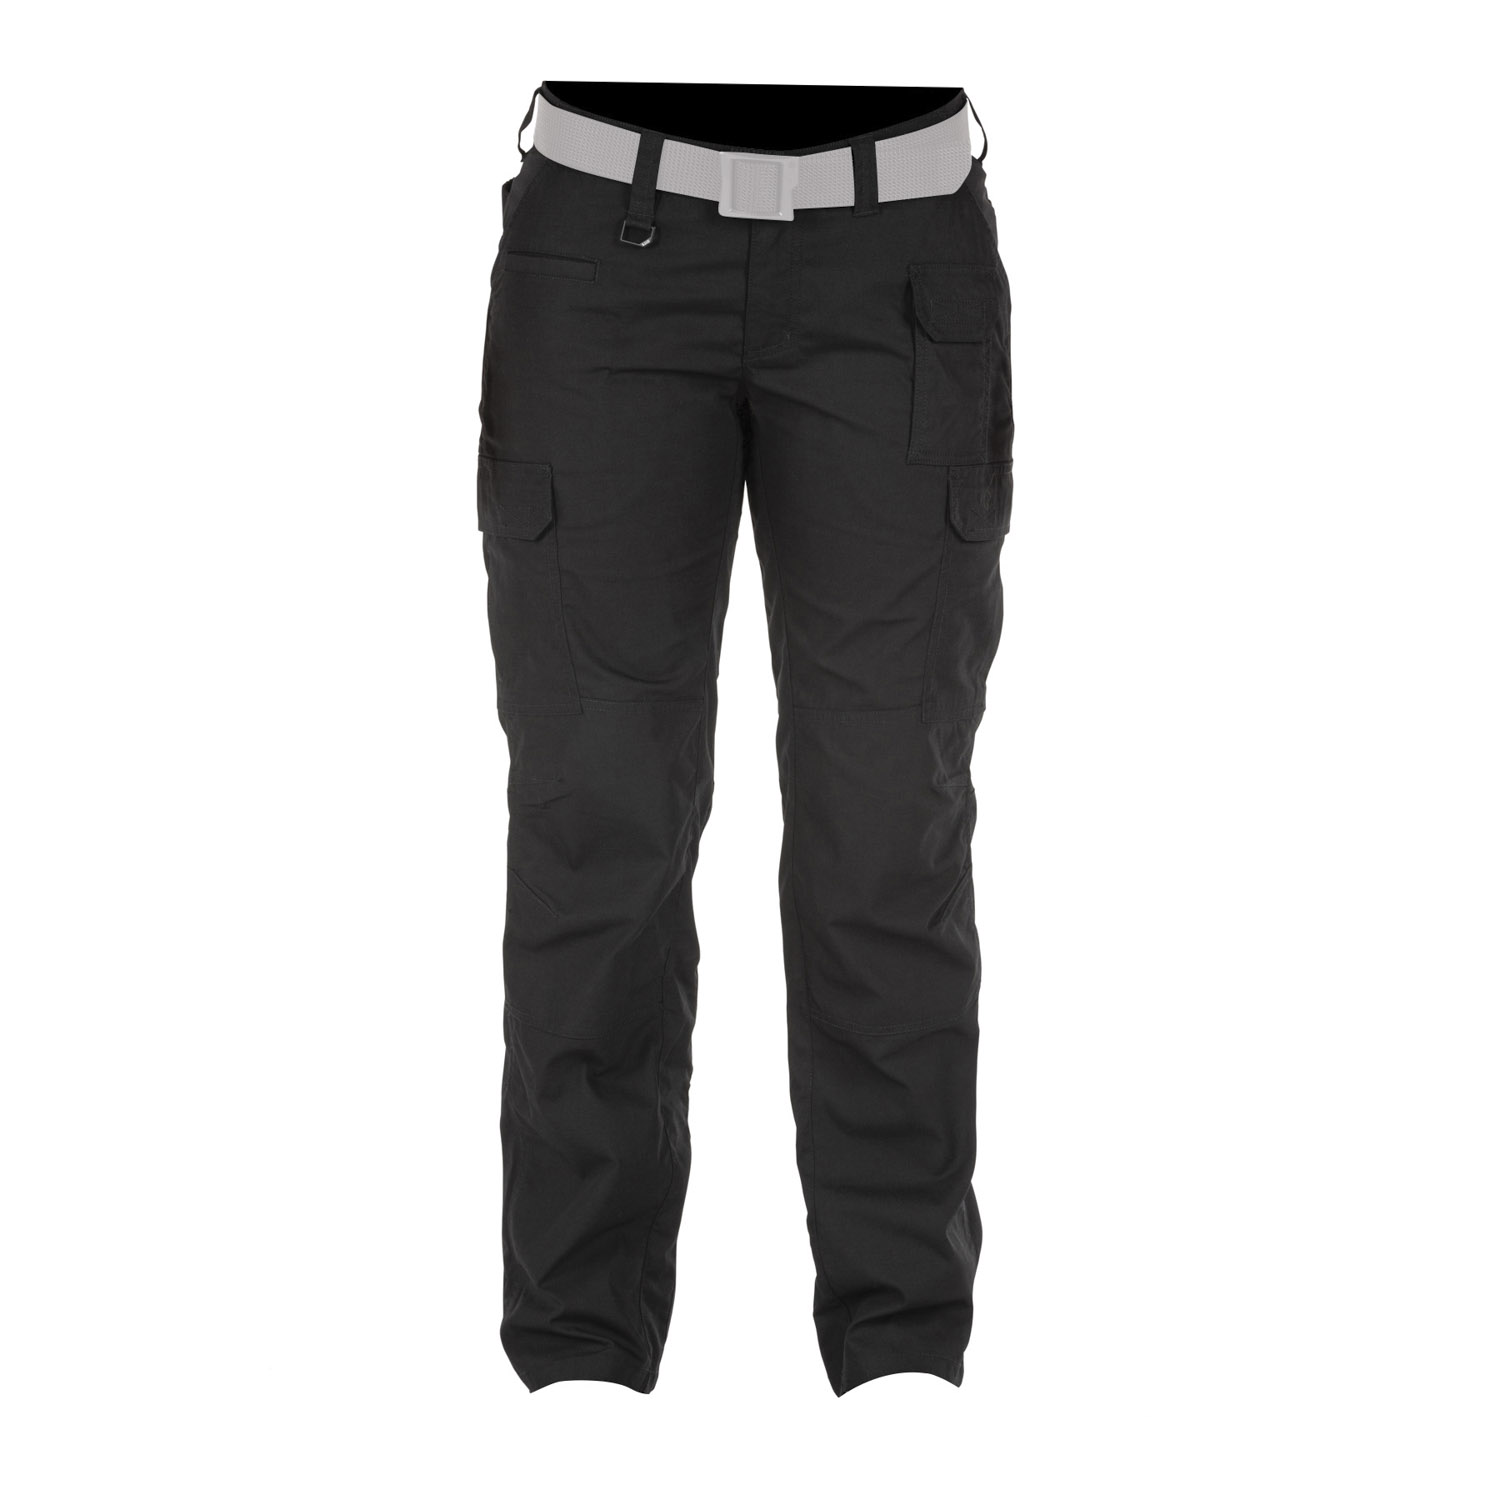 5.11 Women's ABR Pro Tactical Pant